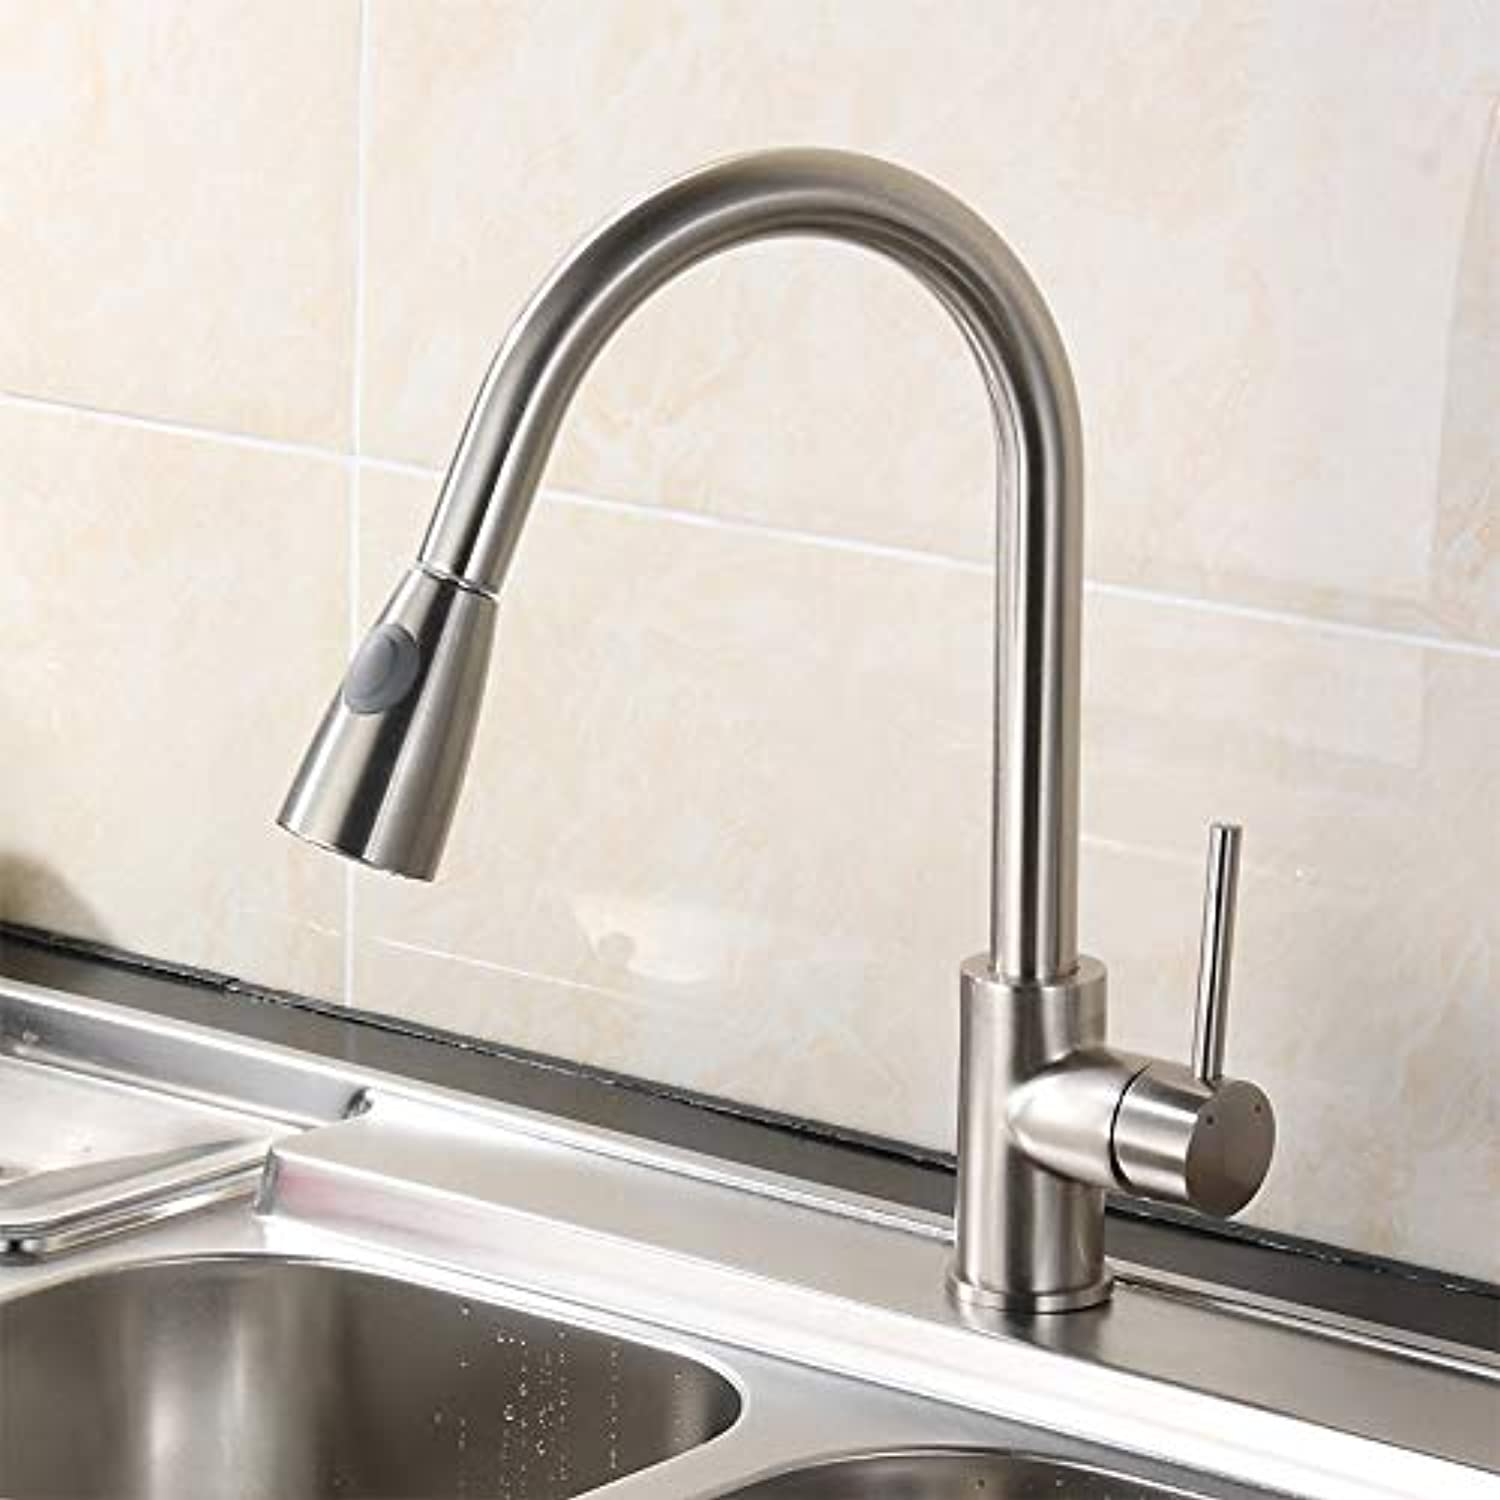 CZOOR 360 Degree Swivel Pull Out Black Kitchen Faucet Chrome Brass 2 Functions Mixer Sink gold Kitchen Faucet for Kitchen,PK-001N